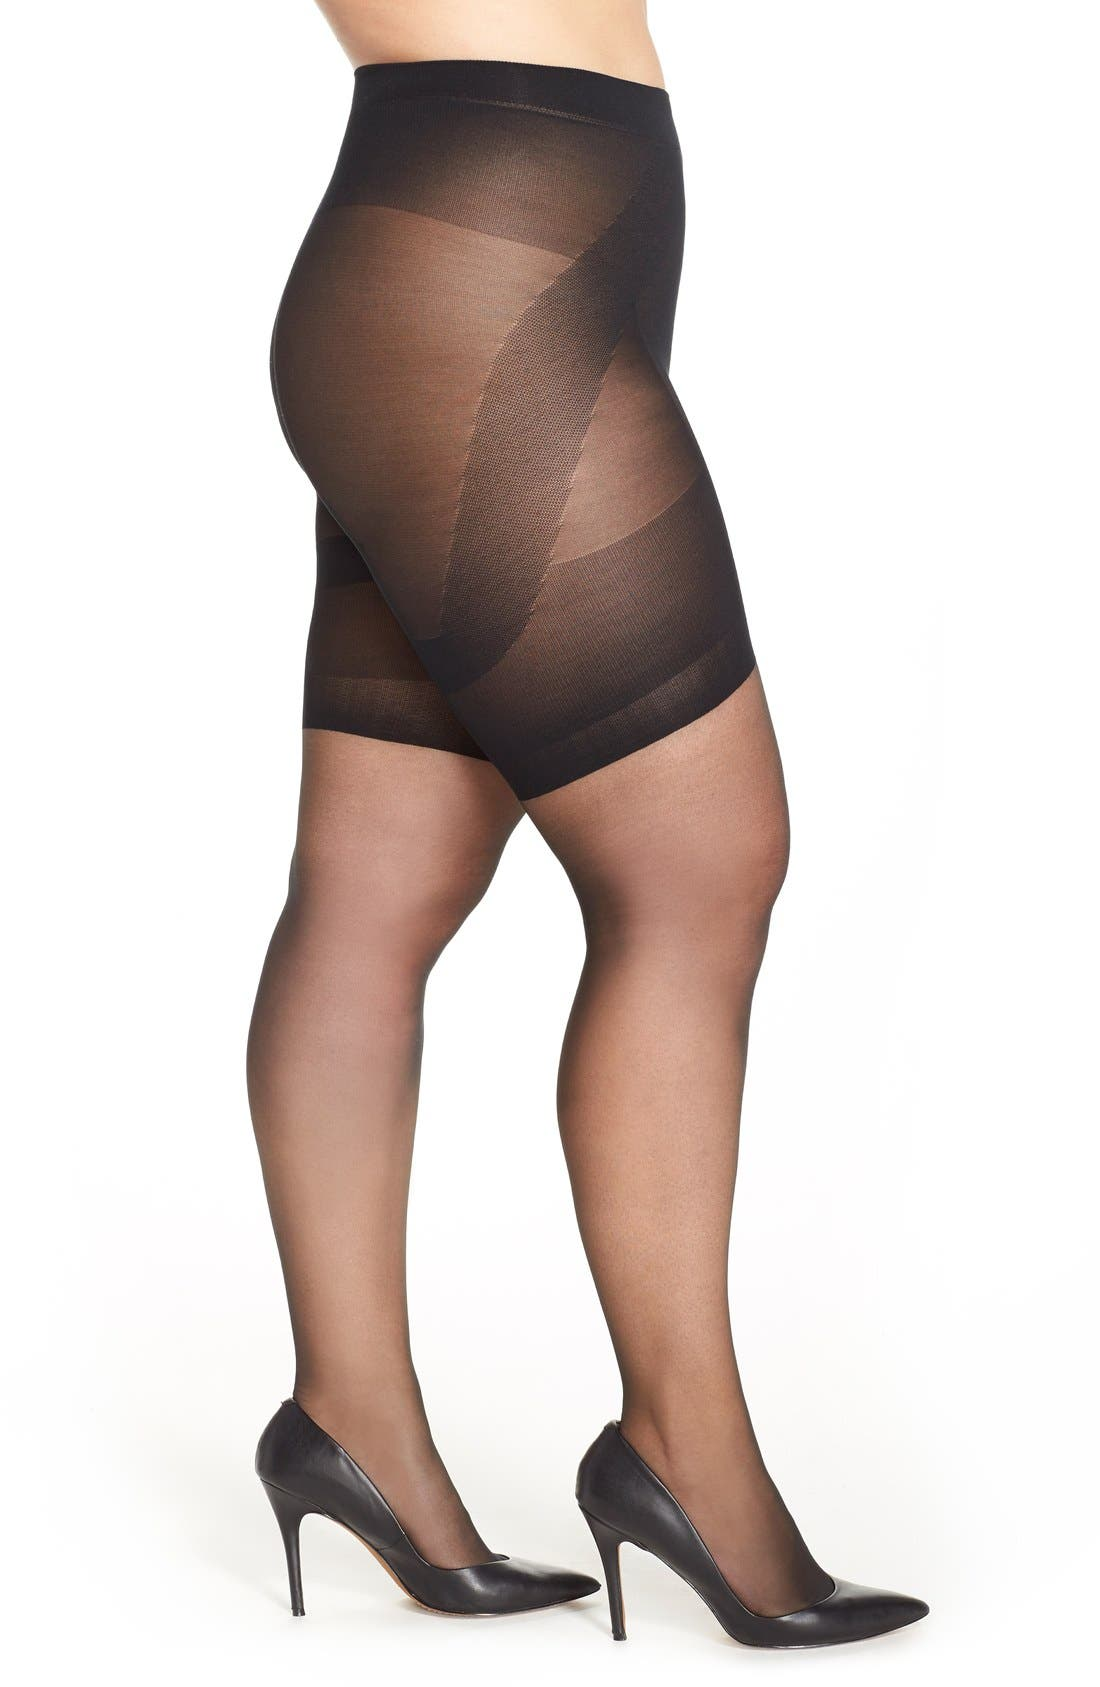 Berkshire Booster Pantyhose (Plus Size)